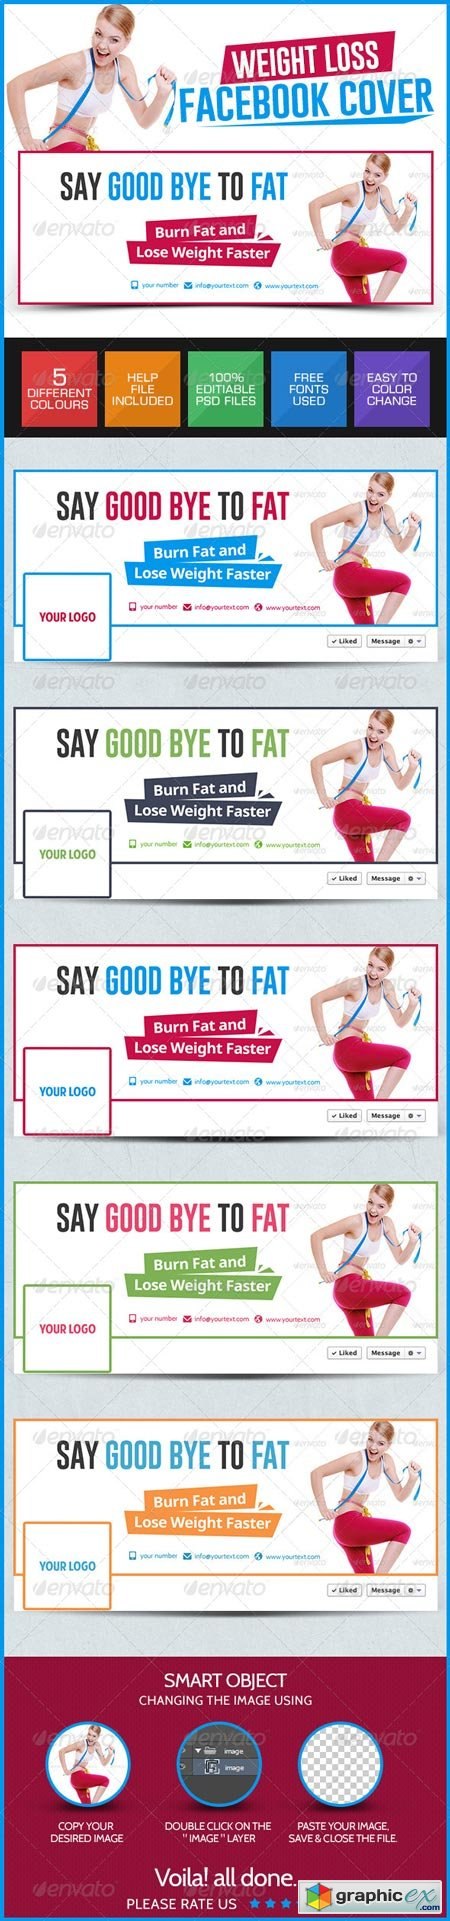 Weight Loss Facebook Covers 7878750